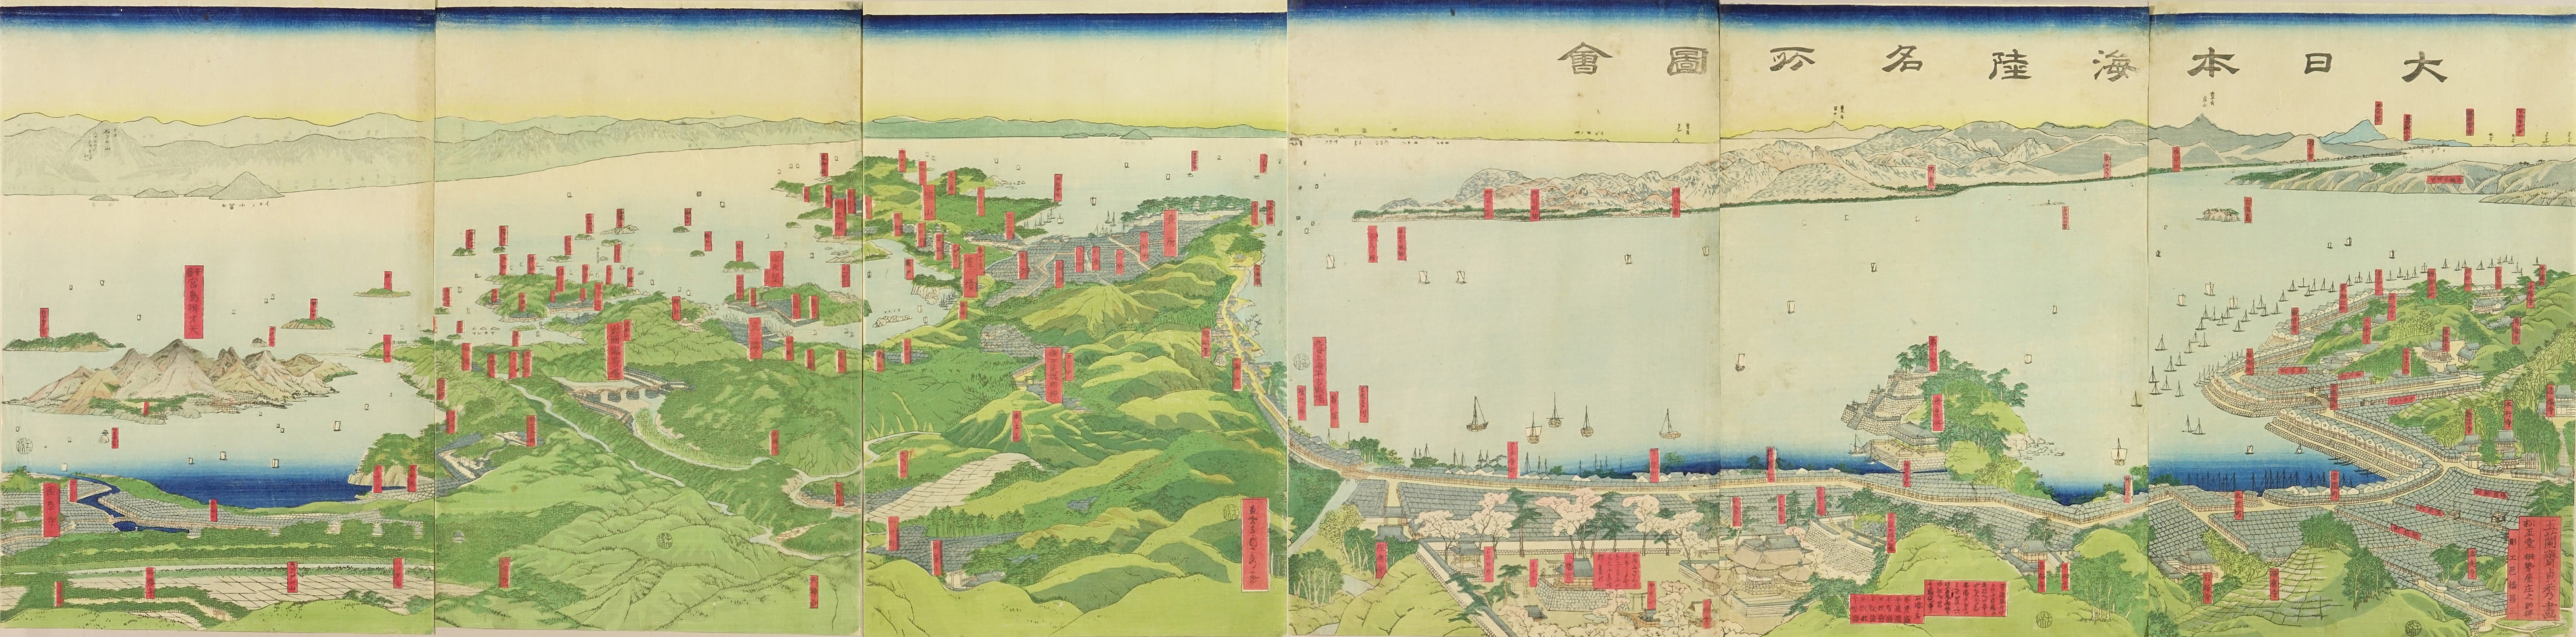 SADAHIDE <i>Dai Nihon kairiku meisho zue</i> (Famous places in the land and sea of great Japan), six sheets